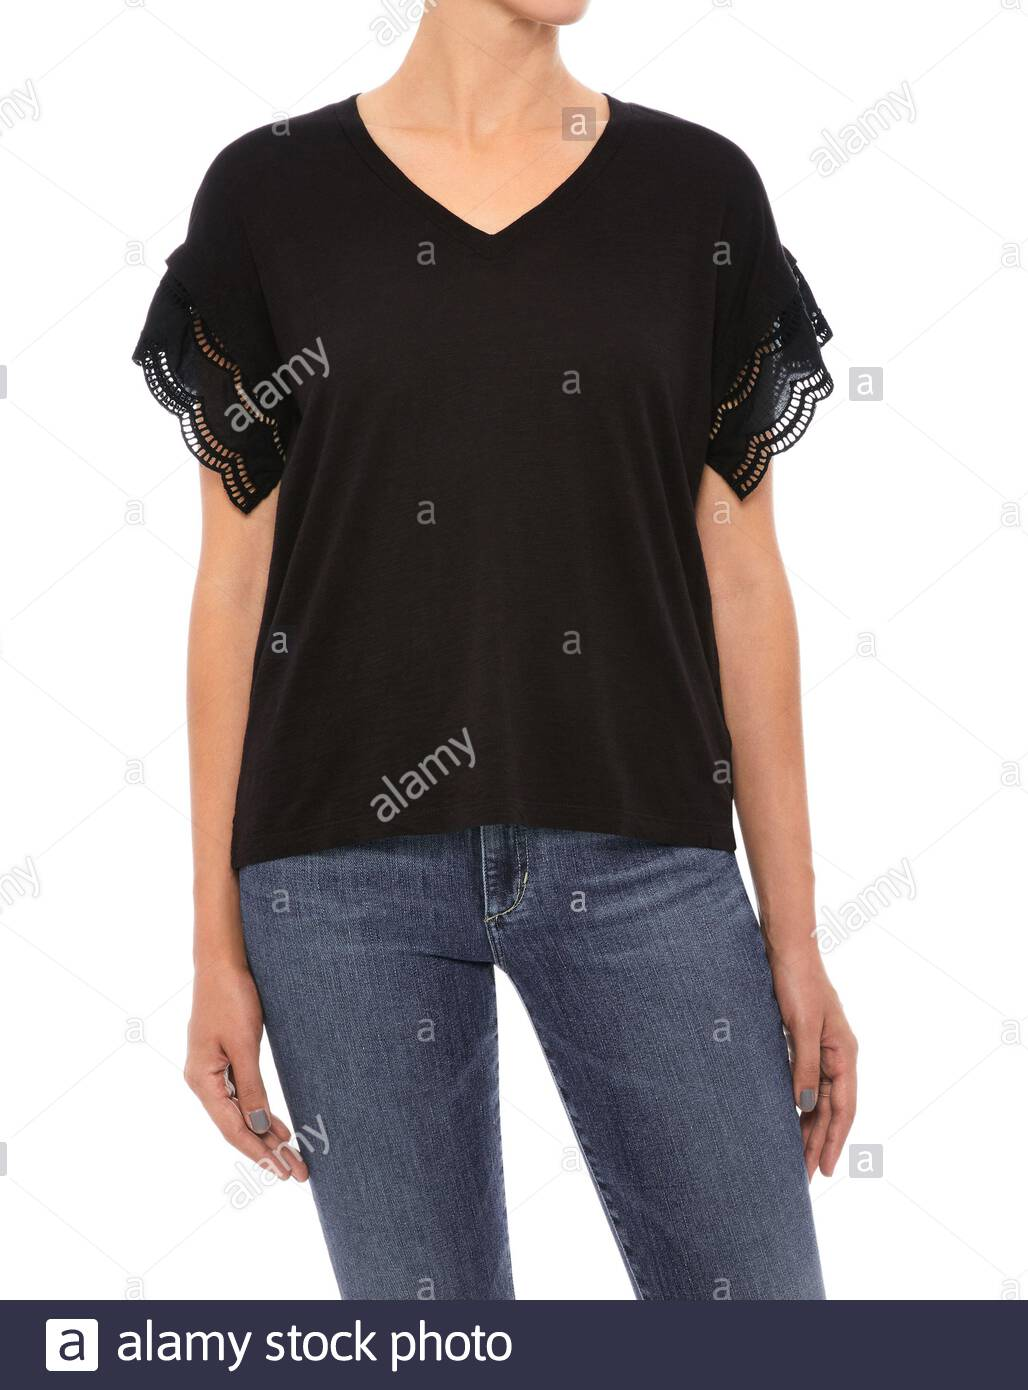 Blank Women T Shirt Template Isolated Stock Photos Blank